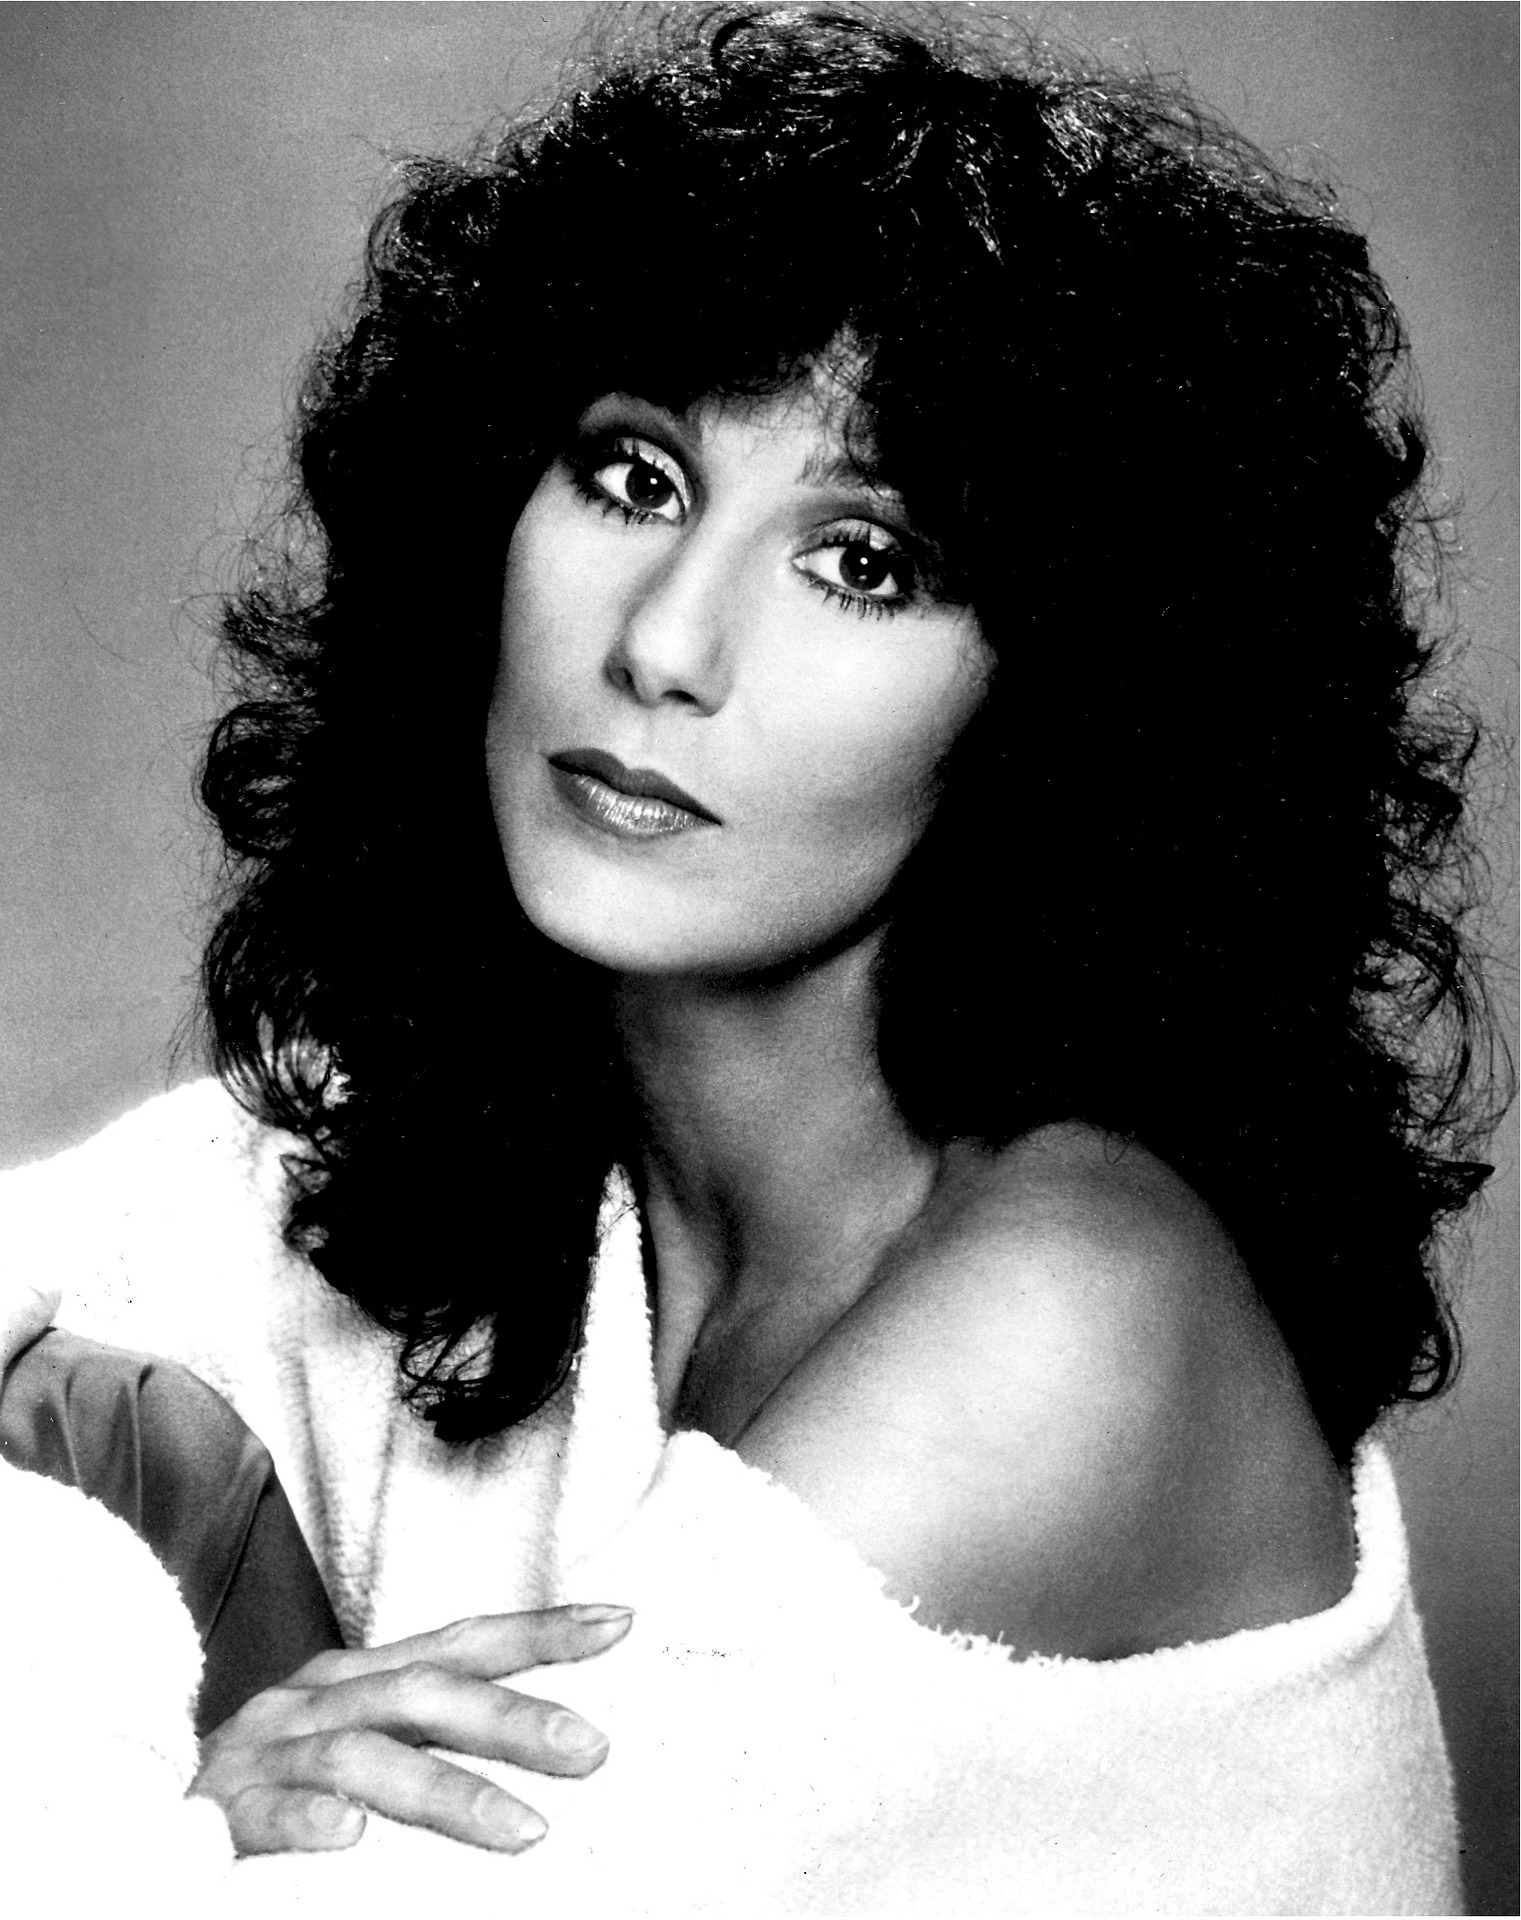 https://pixabay.com/en/cher-cherilyn-sarkisian-entertainer-509344/